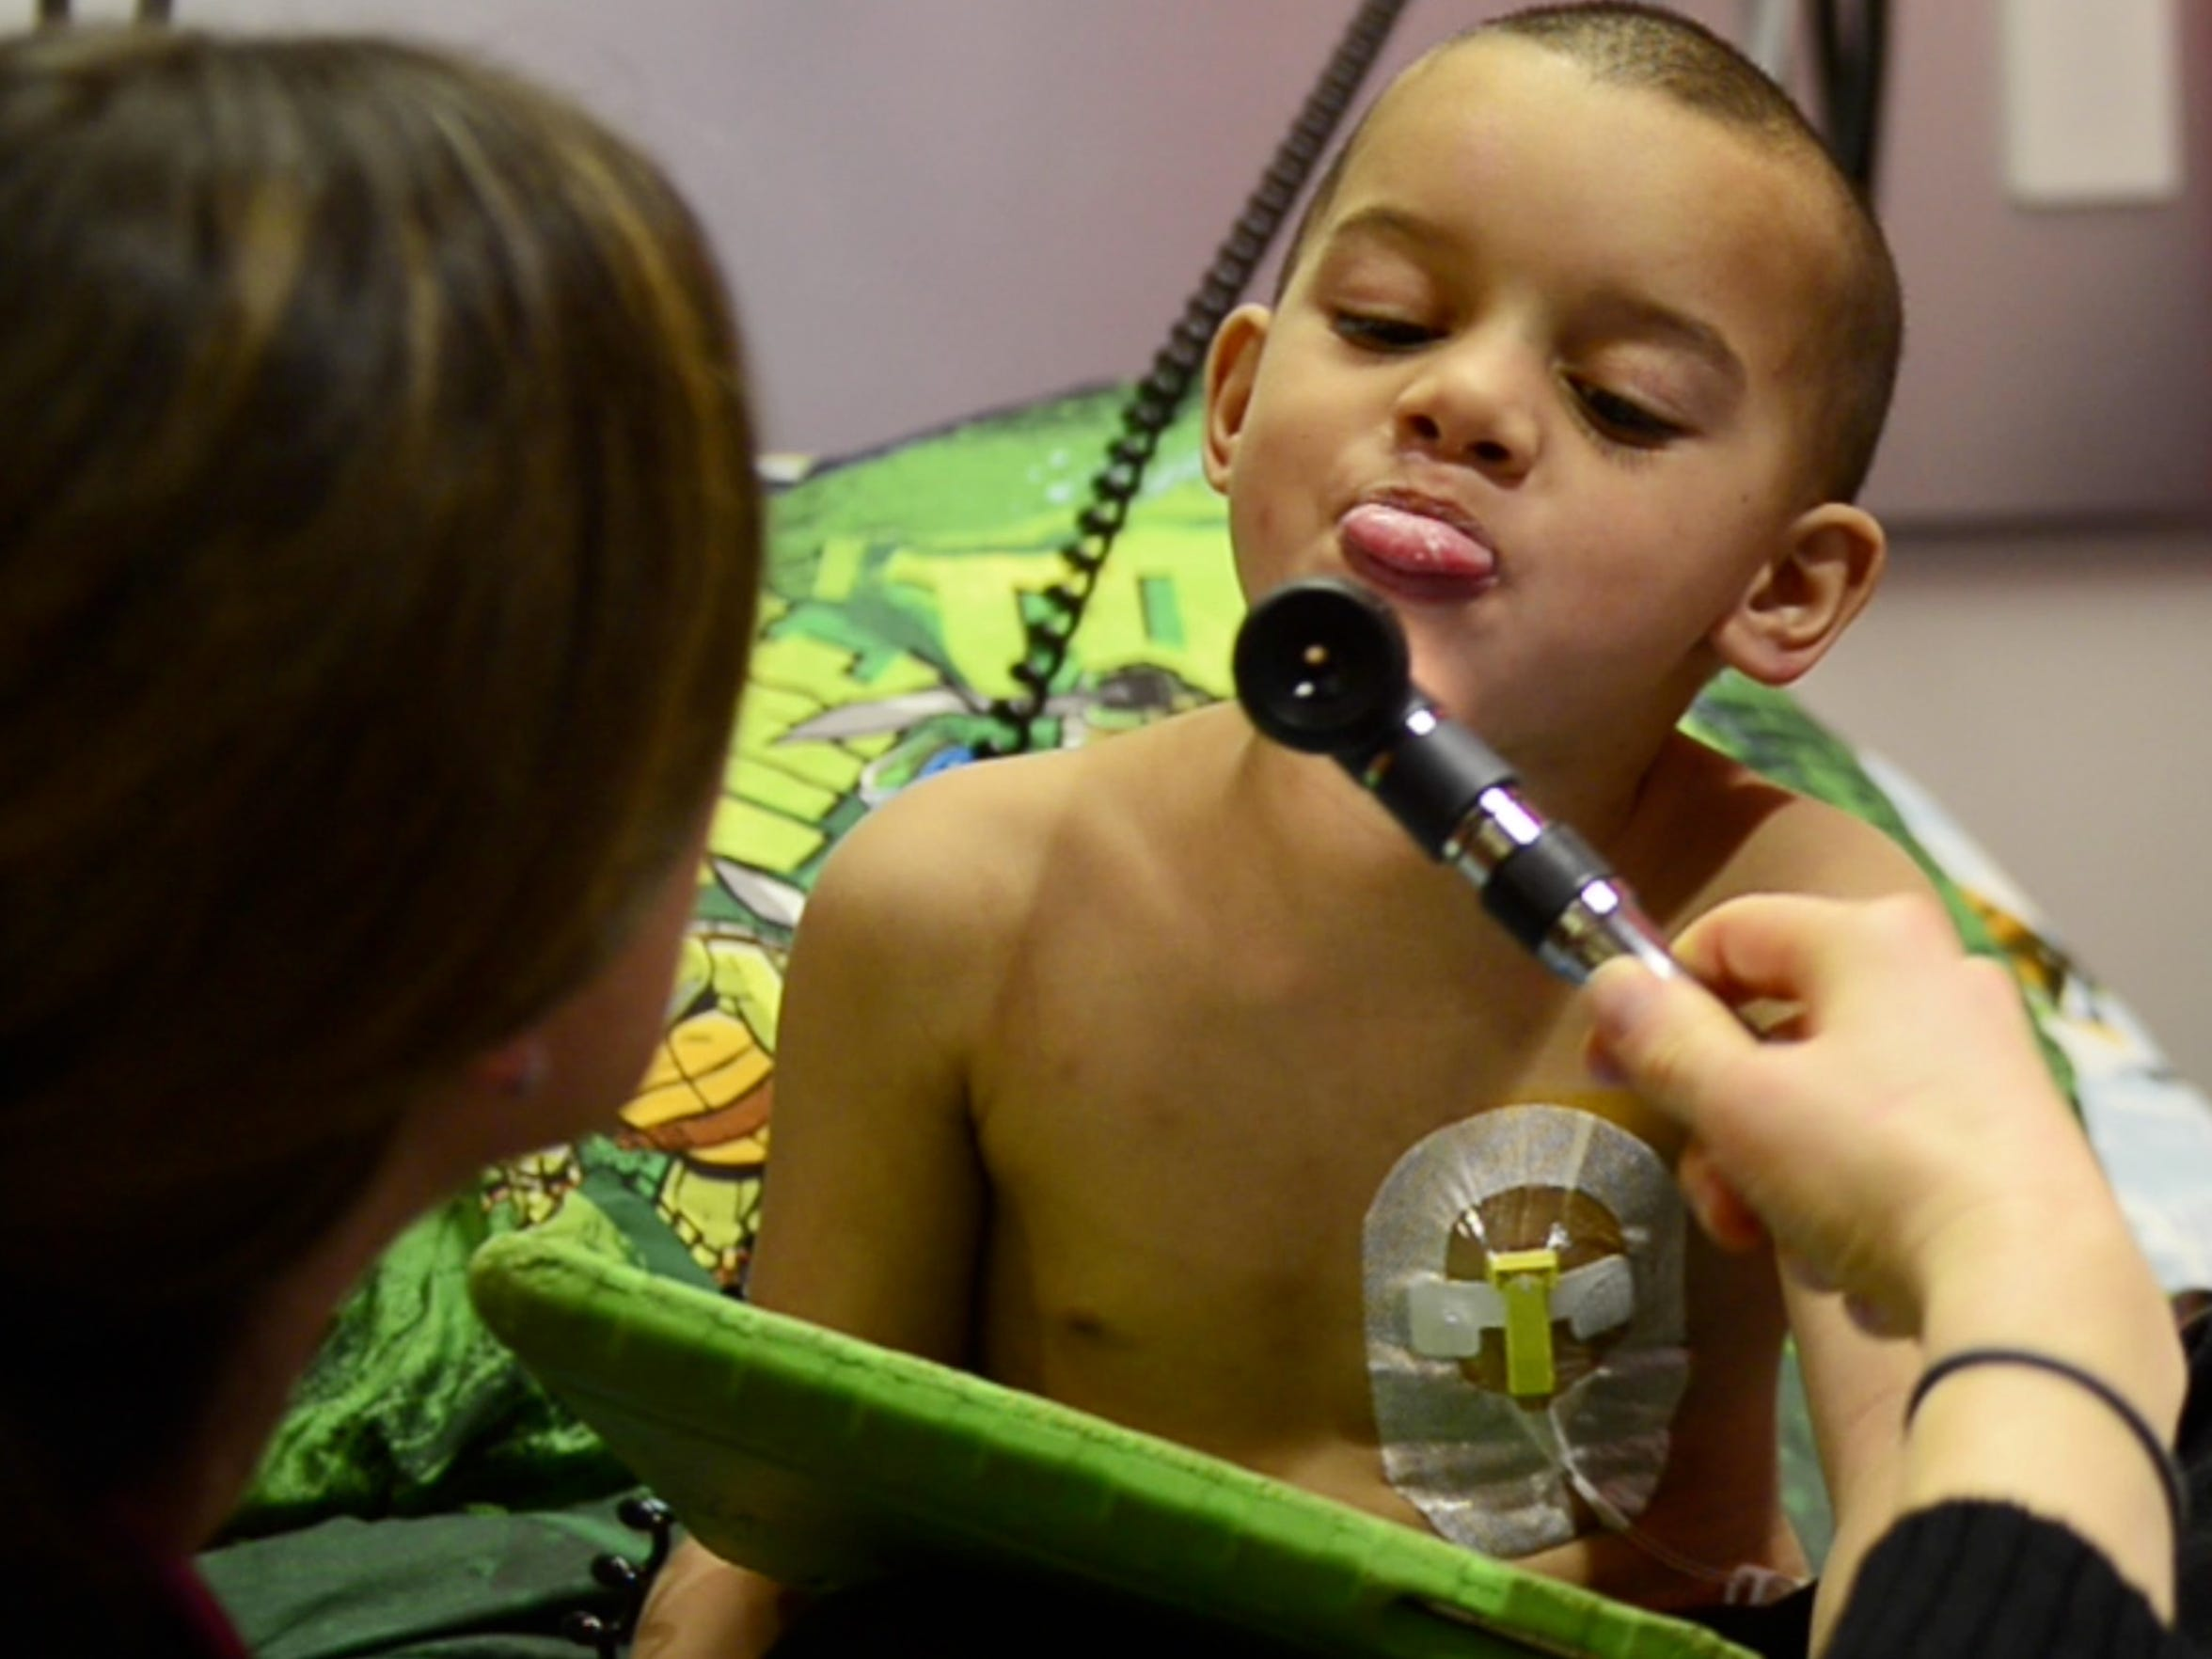 Tae Smith, 4, of Port Clinton defiantly sticks out